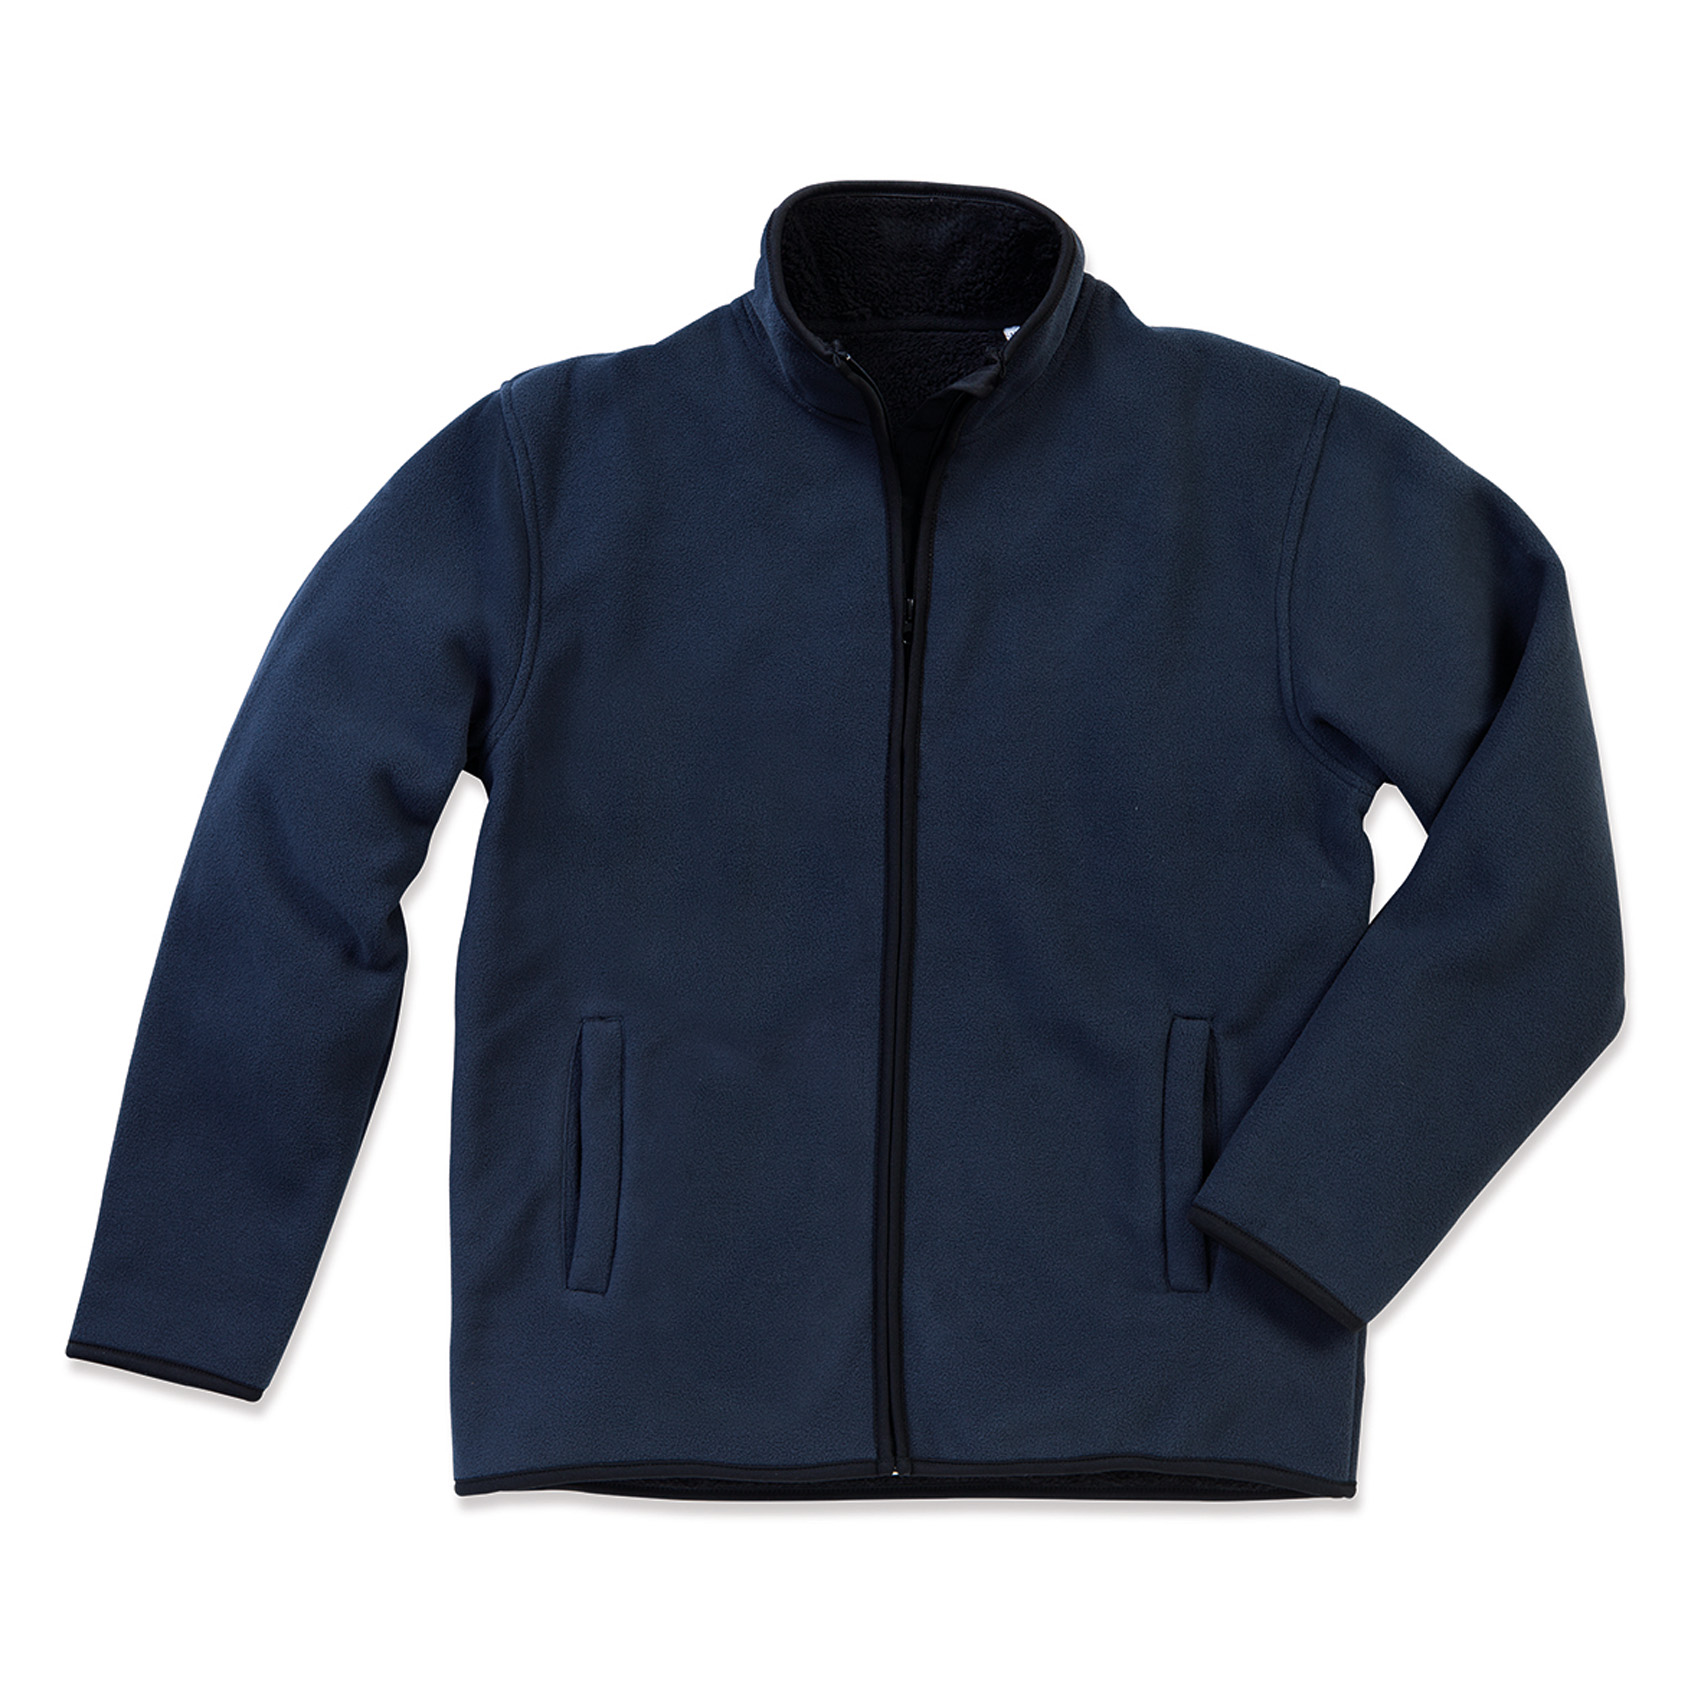 Stedman Teddy Fleece Cardigan Active for him